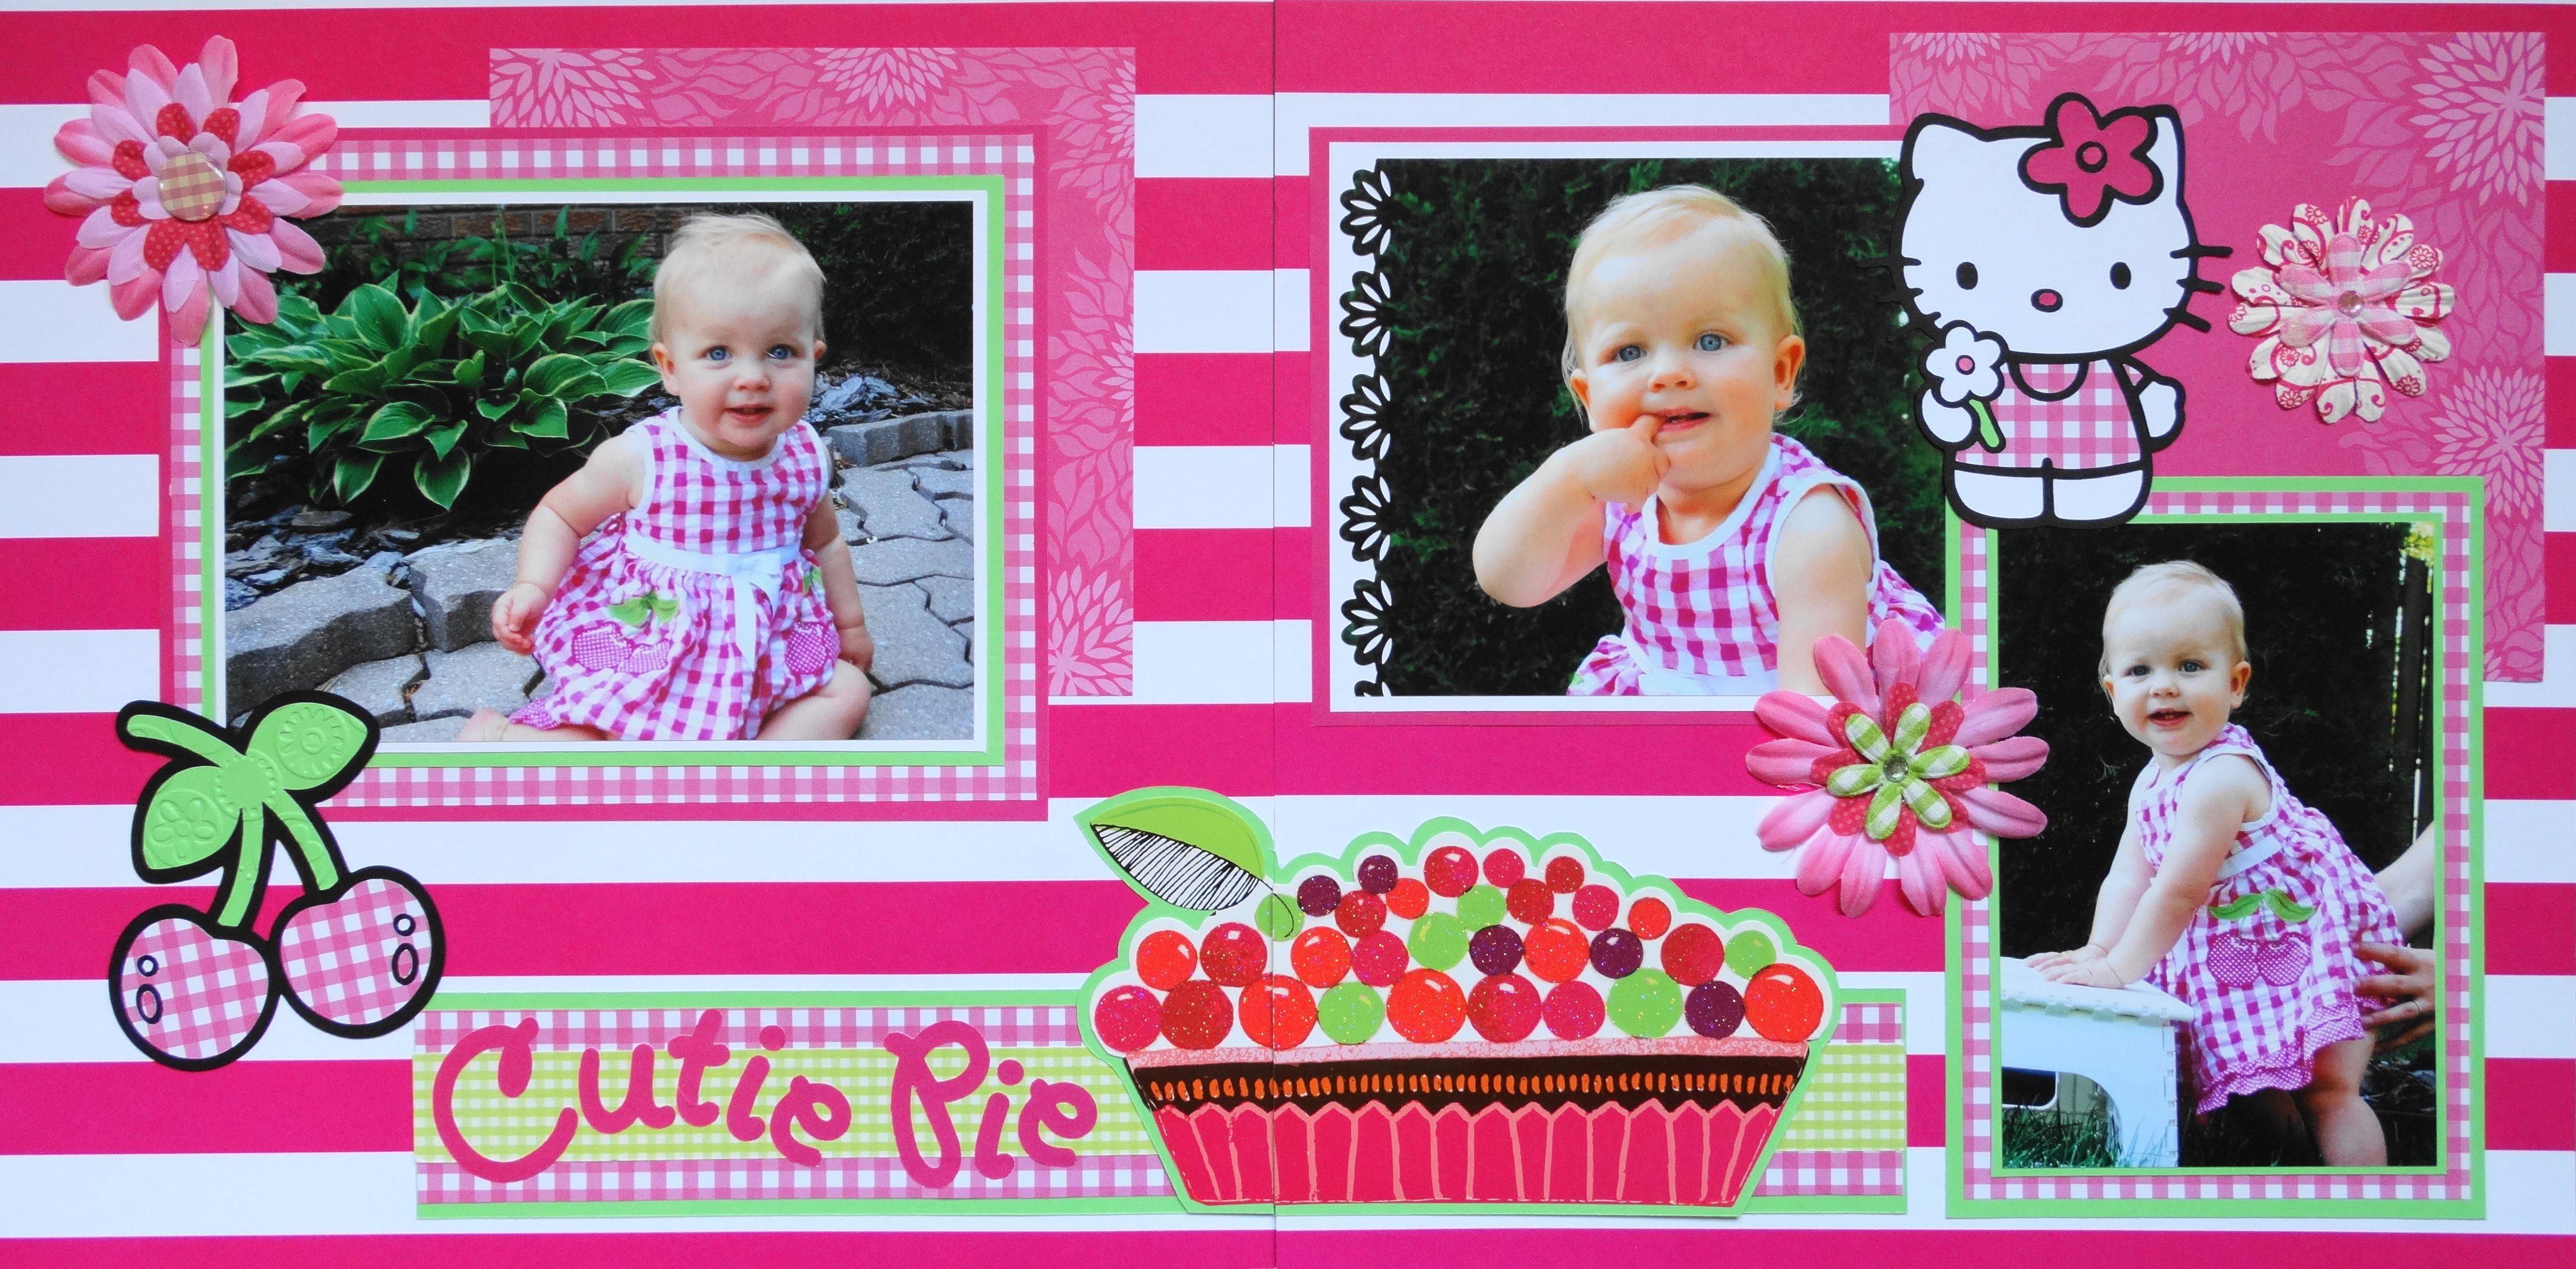 Scrapbook ideas hello kitty - Scrapbook Page Cutie Pie 2 Page Girl Layout With Hello Kitty Cherries And